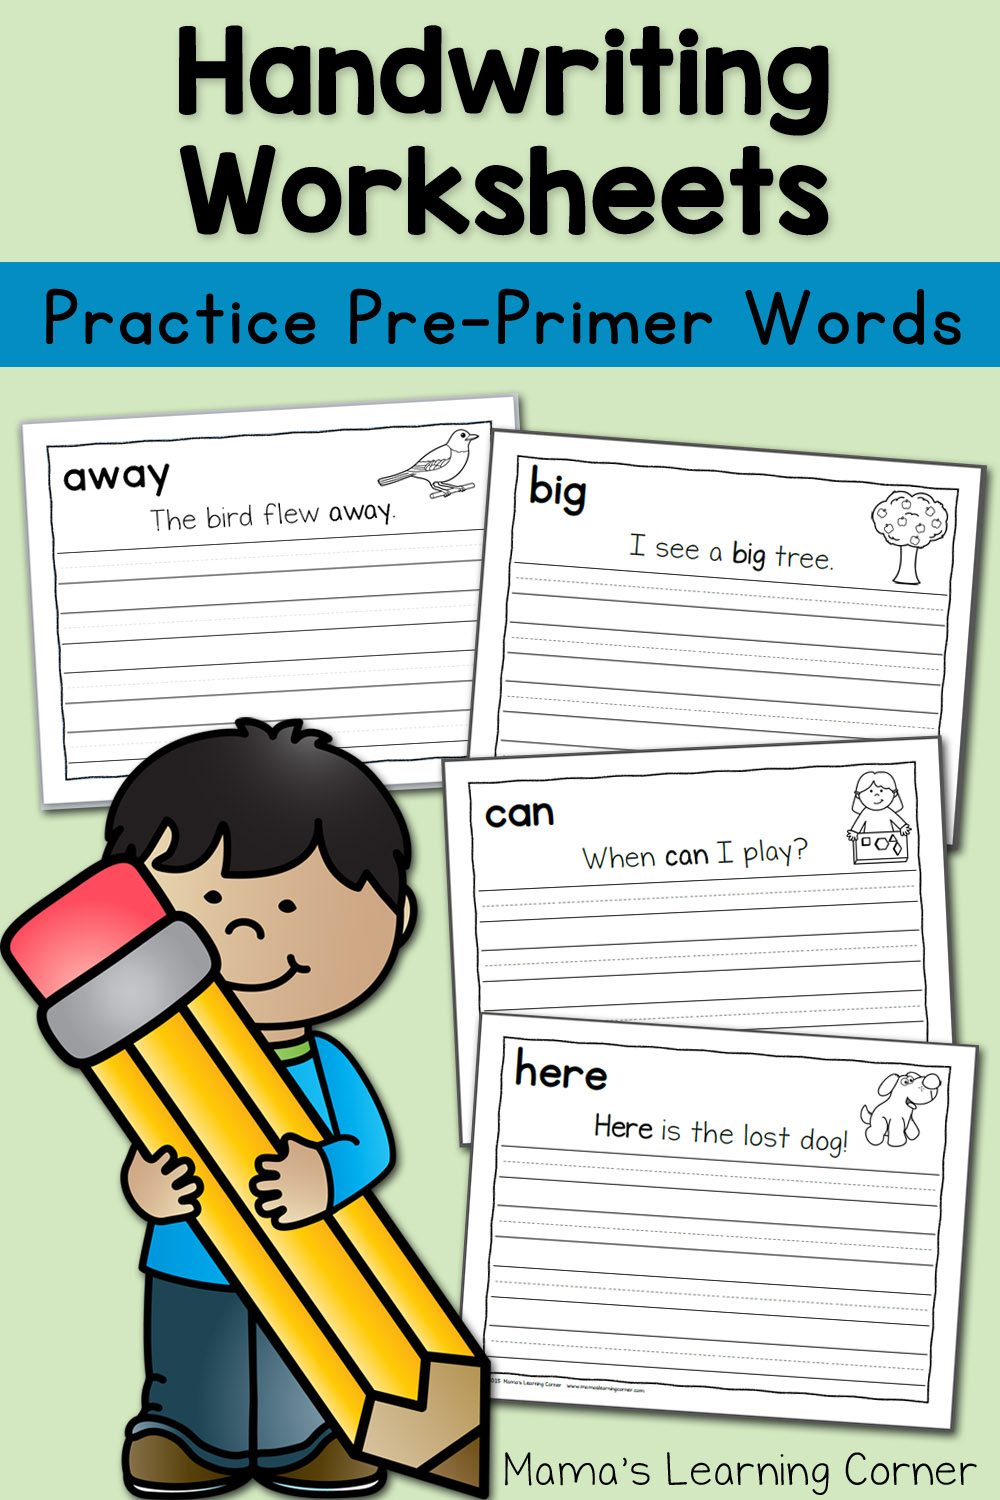 Handwriting Worksheets for Kids: Pre Primer Sentences